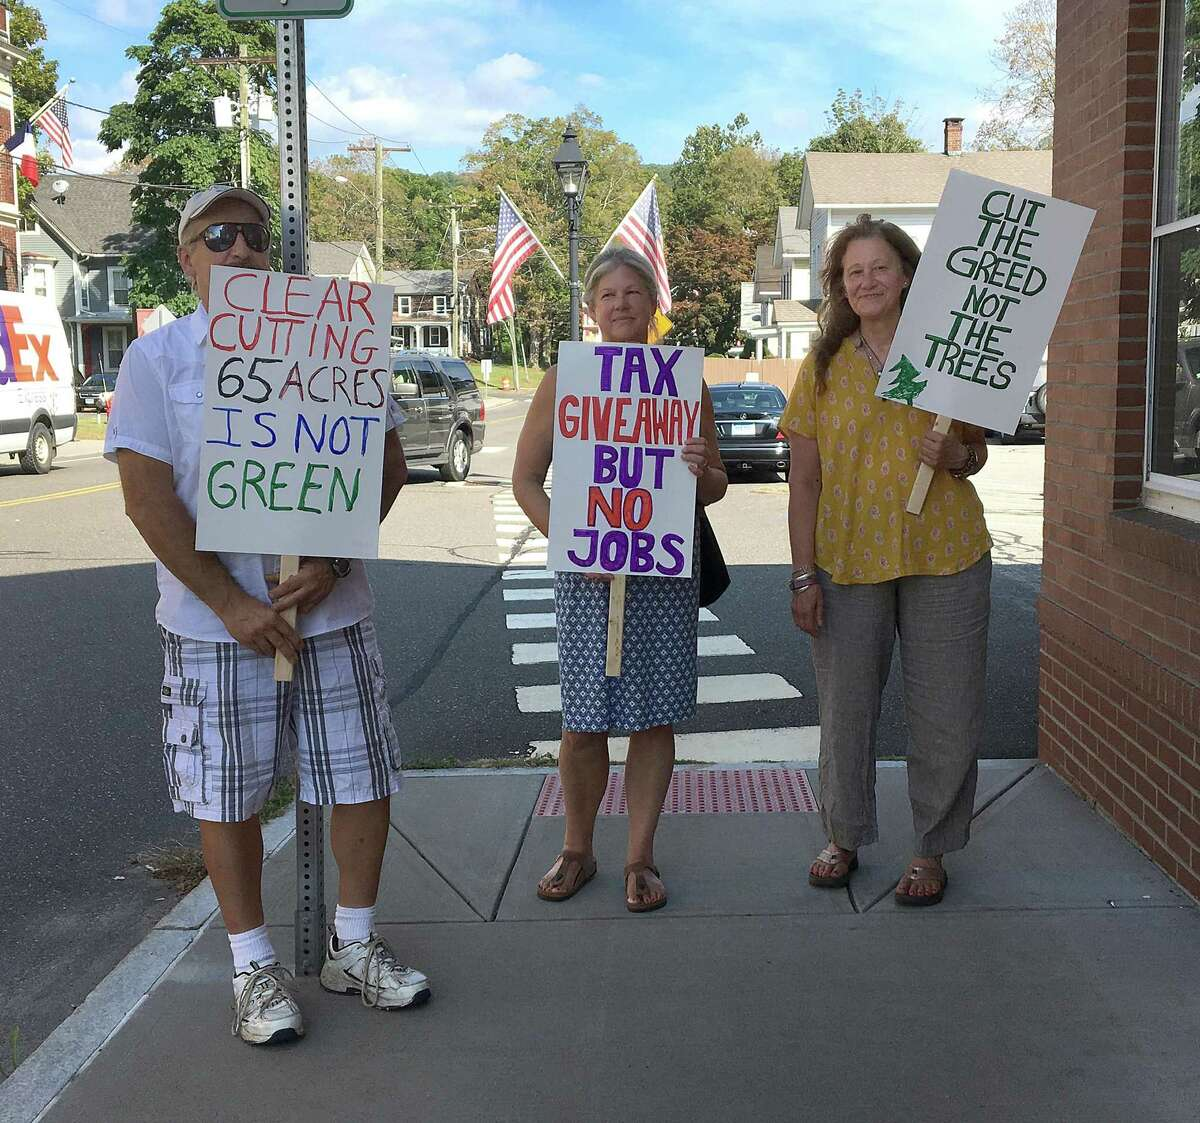 Protesters were present outside of the New Milford Town Hall in 2017 where a meeting regarding solar panels on Candlewood Mountain was taking place.